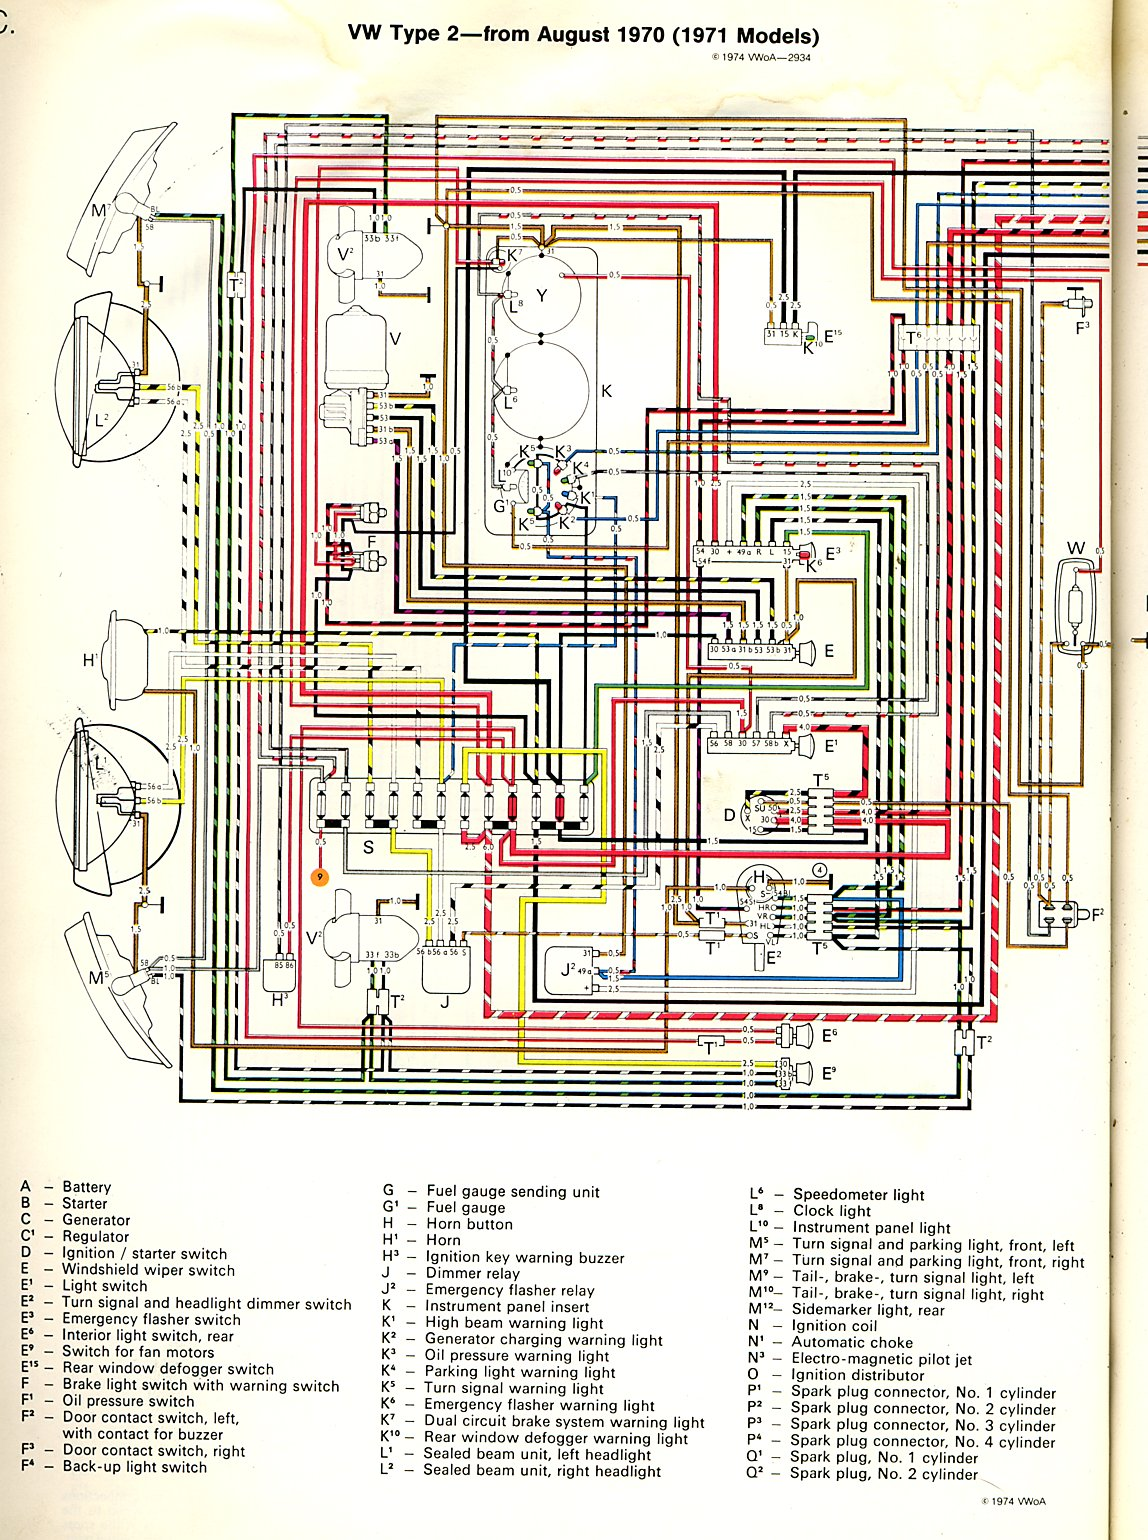 baybus_71a 71 vw bus wiring diagram 1970 vw bus fuse box diagram \u2022 wiring Wiring Harness Diagram at crackthecode.co